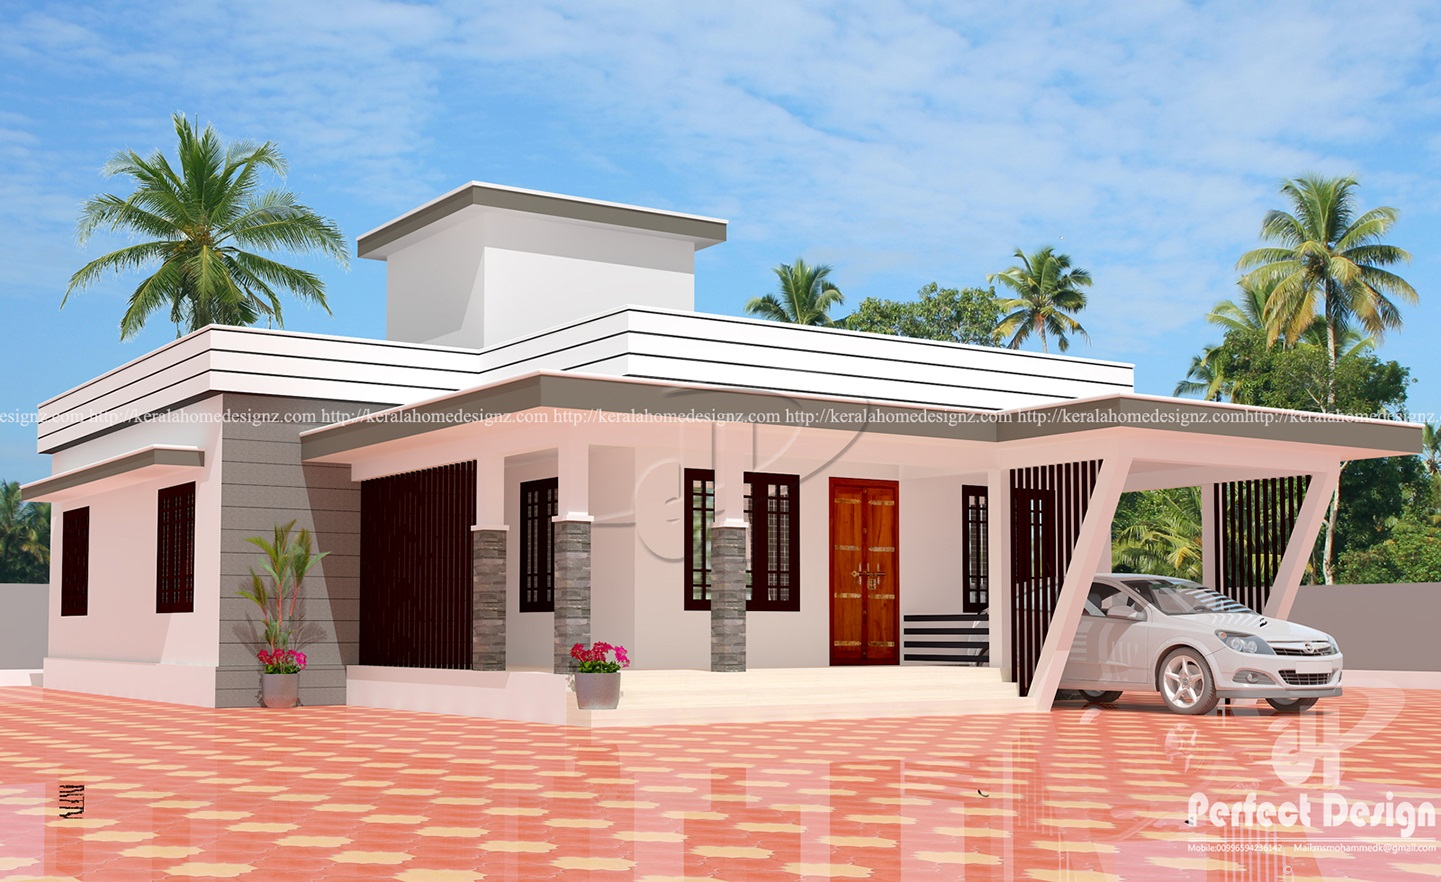 3 Bedroom Modern Flat Roof House Layout Kerala Home Design: modern flat roof house designs